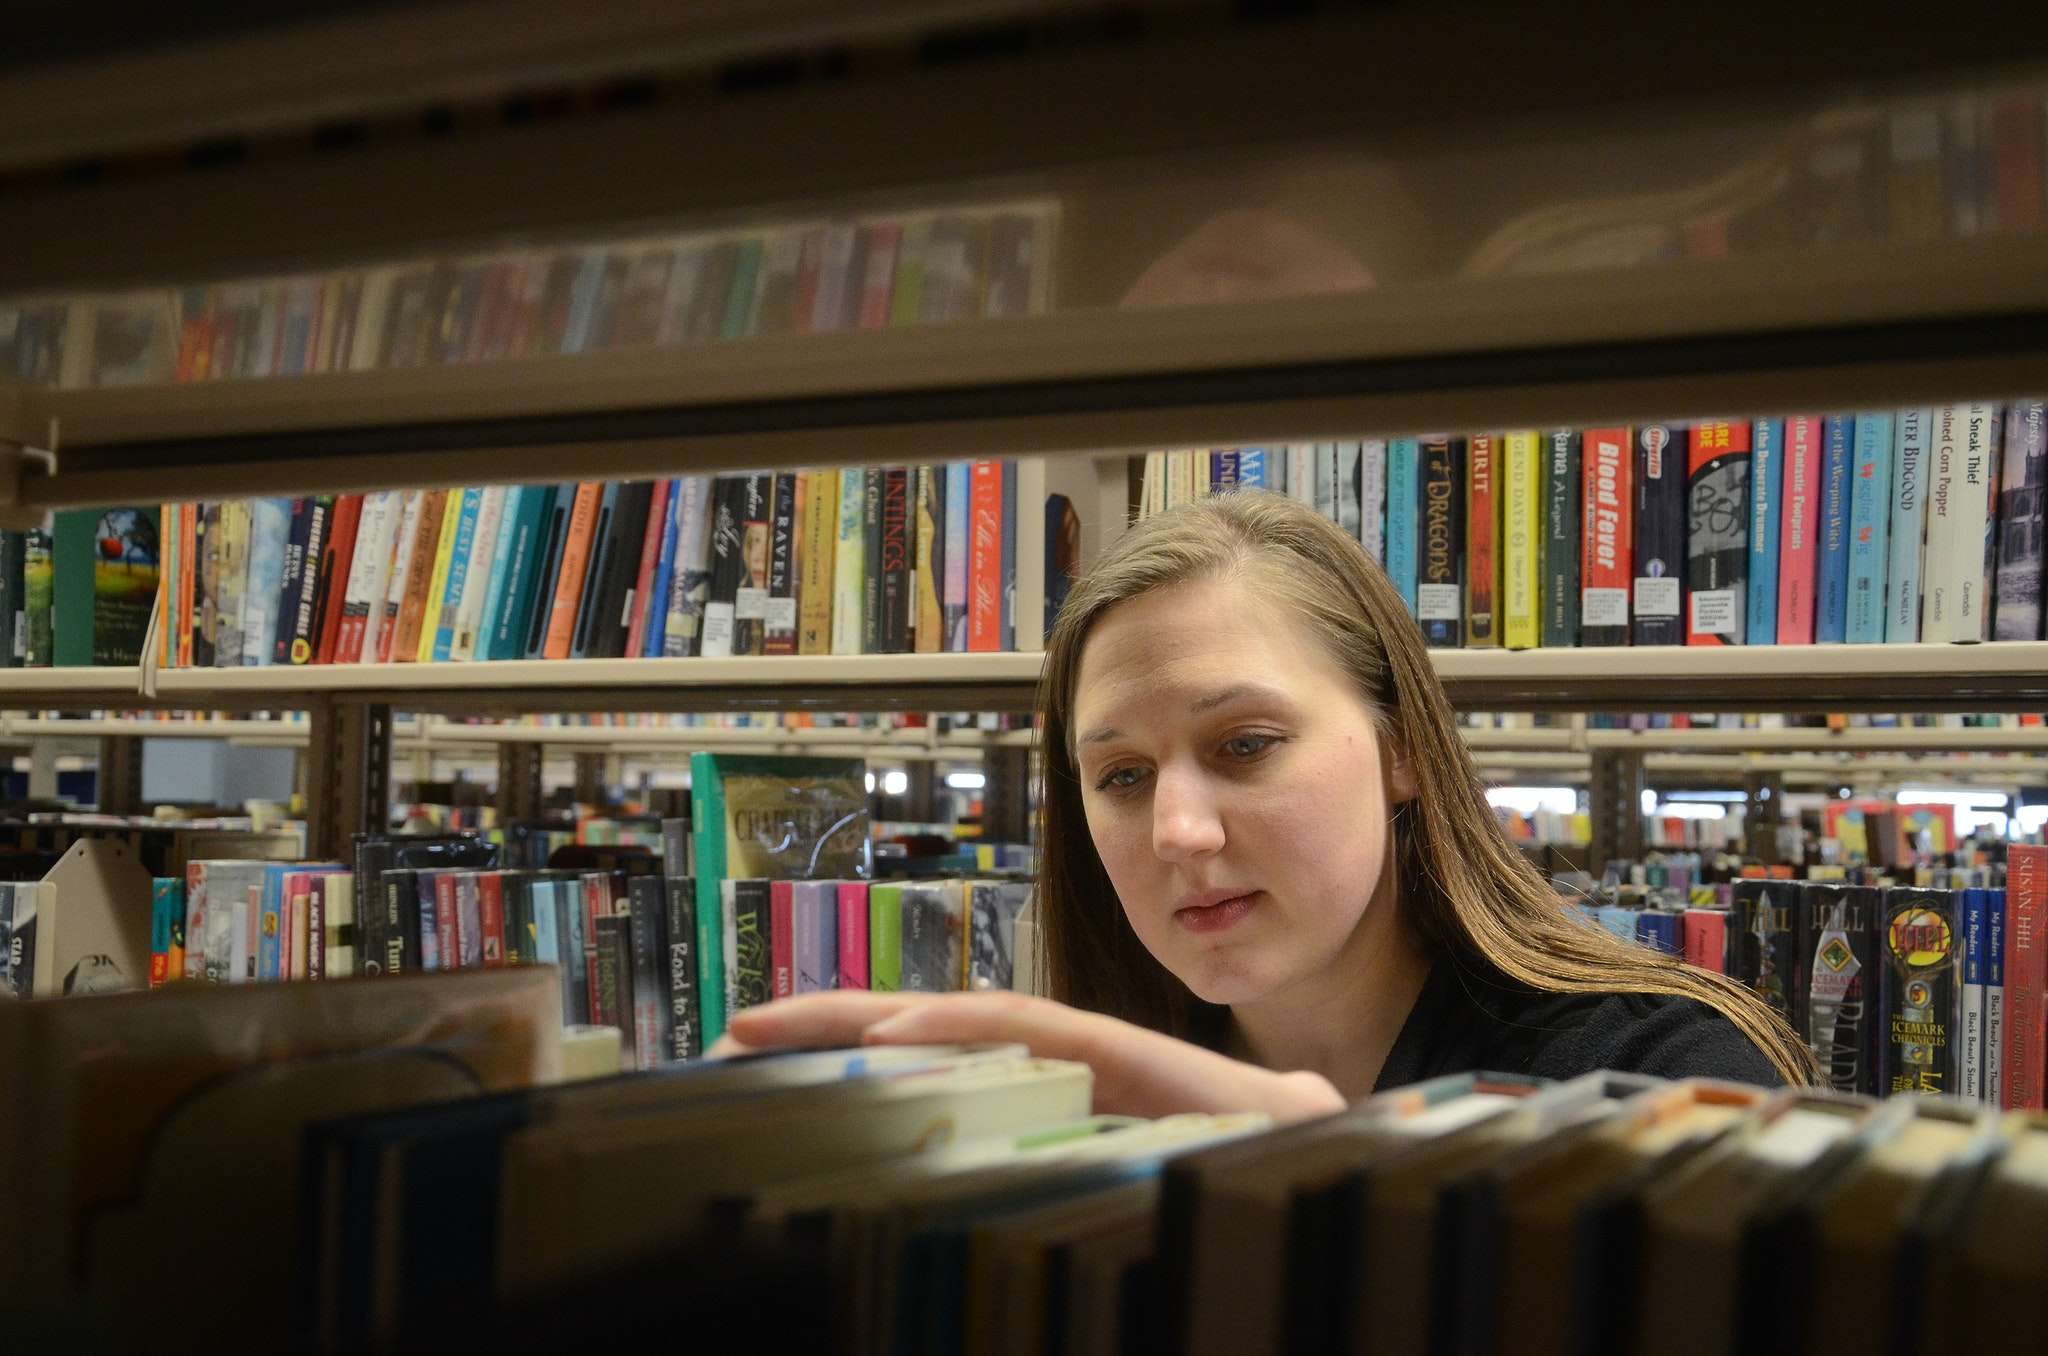 Turning a page: downsizing the campus book collections